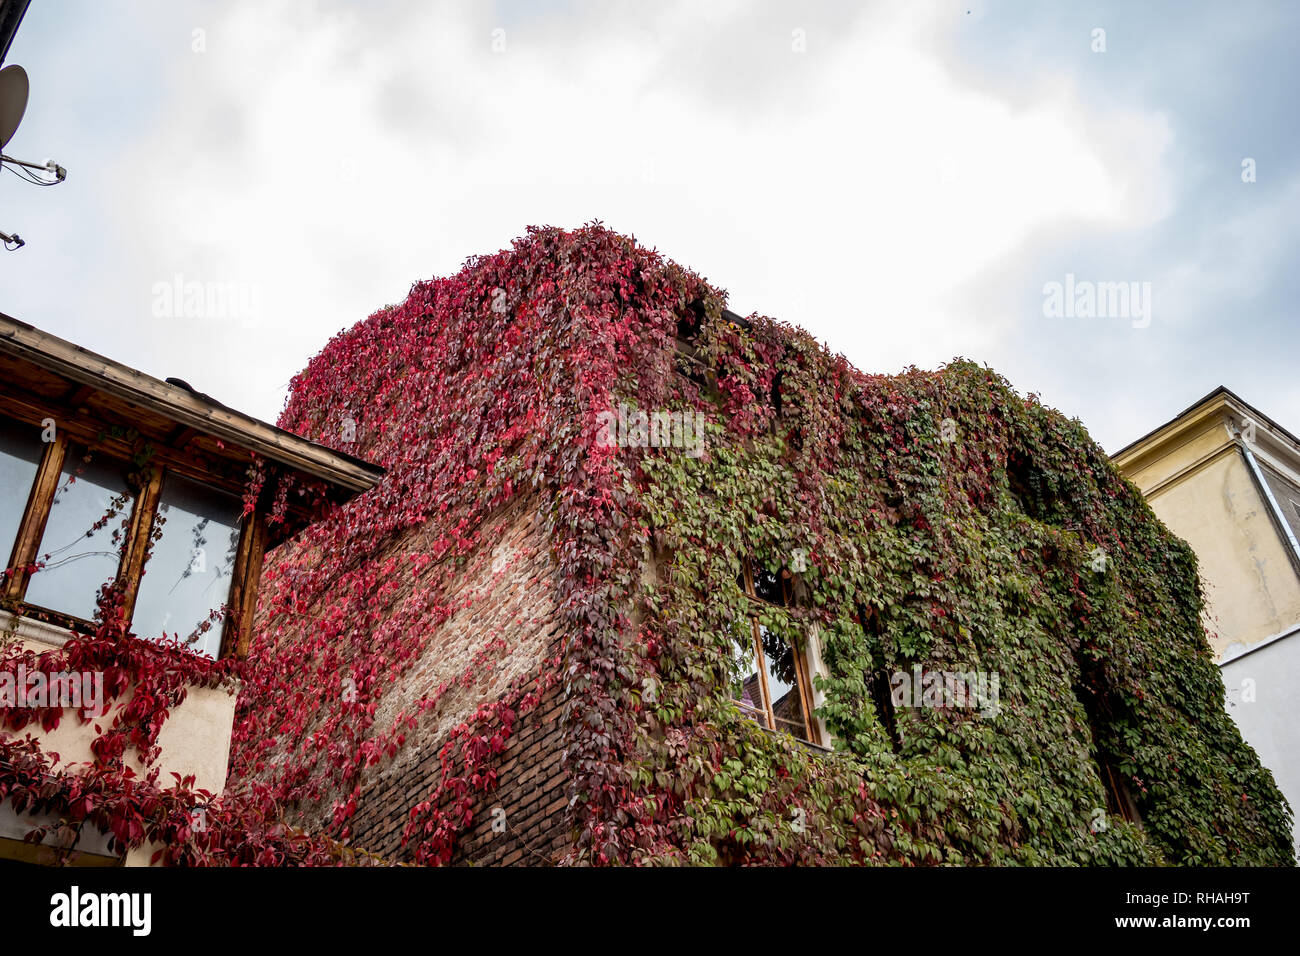 Old residential building in downtown Sofia, amazingly overgrown with Wild Grapes, thousands of leaves with green and red autumn colors, Bulgarian fall Stock Photo